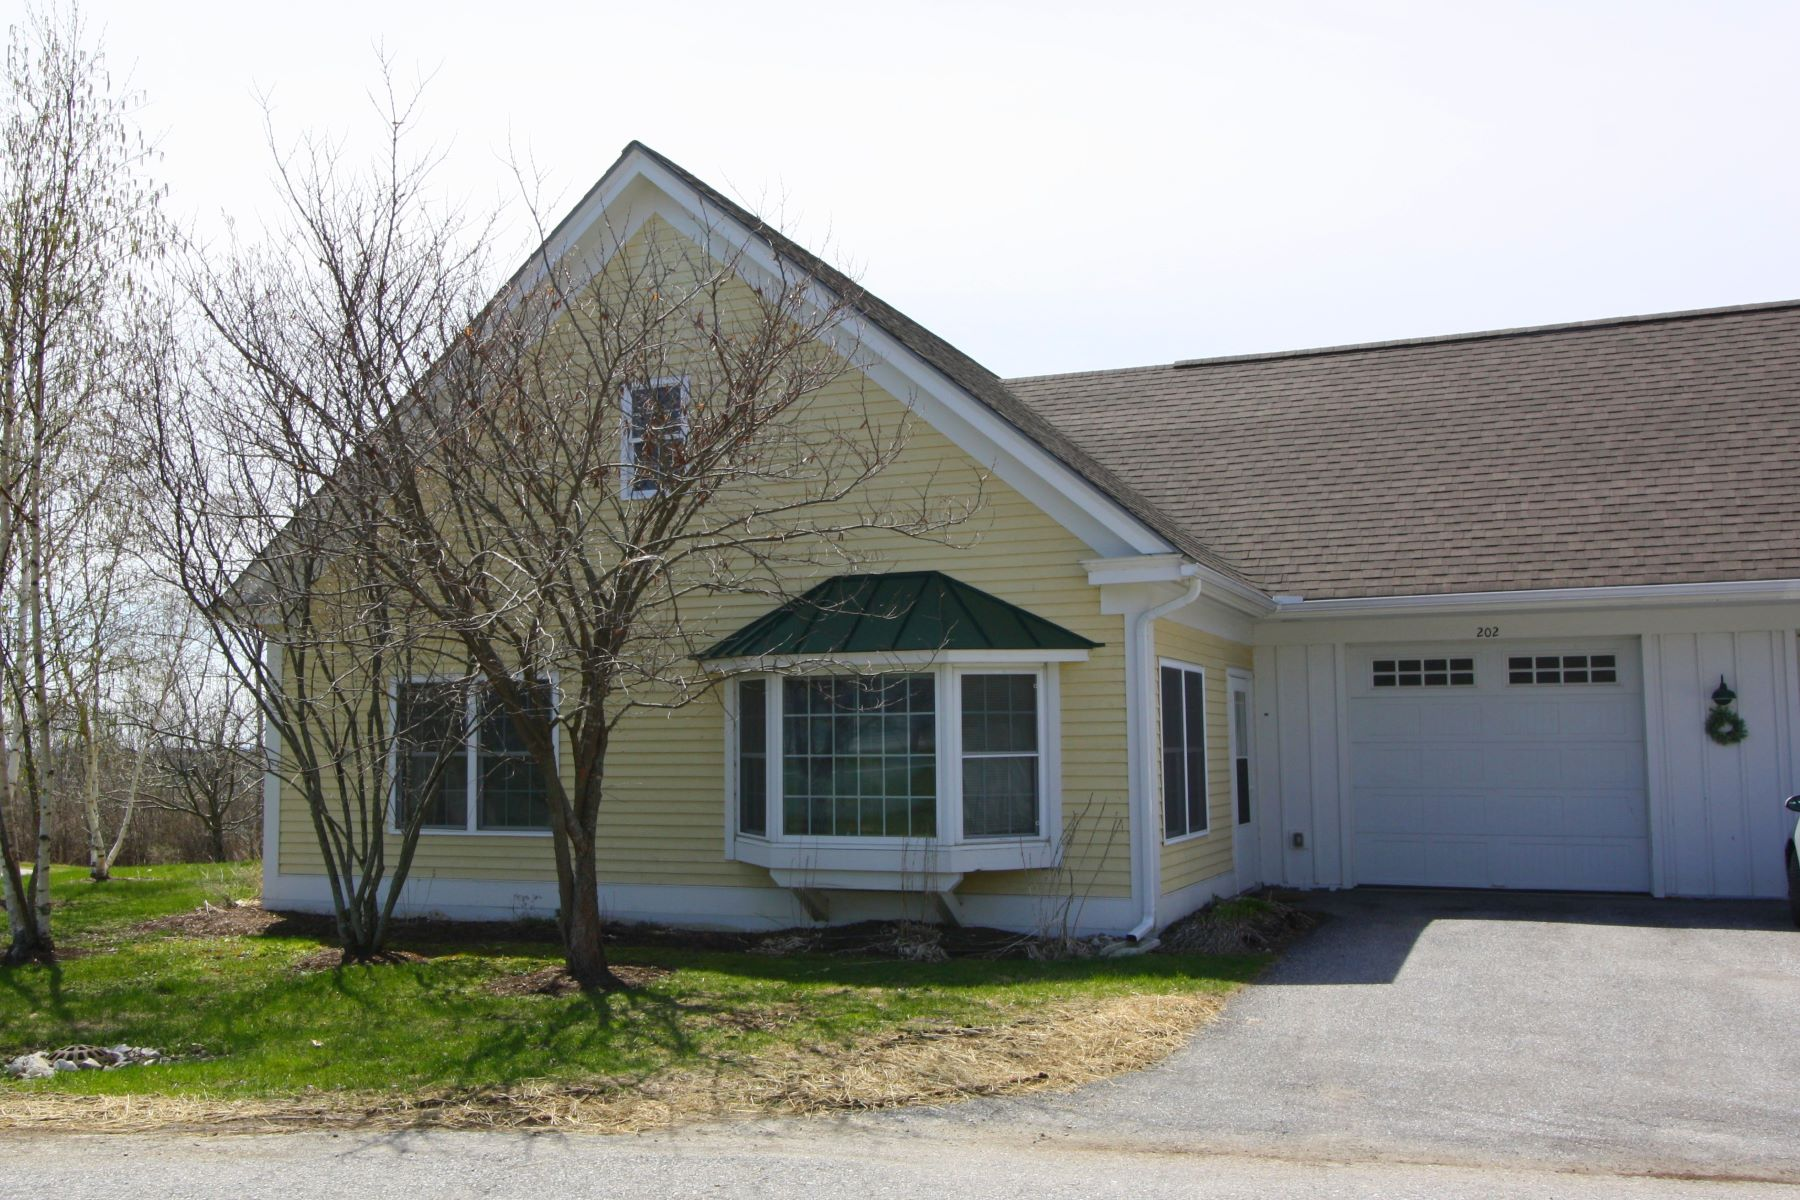 2 Bedroom Cottage at The Residence at Otter Creek 202 Basin View Rd 202, Middlebury, Vermont 05753 Estados Unidos